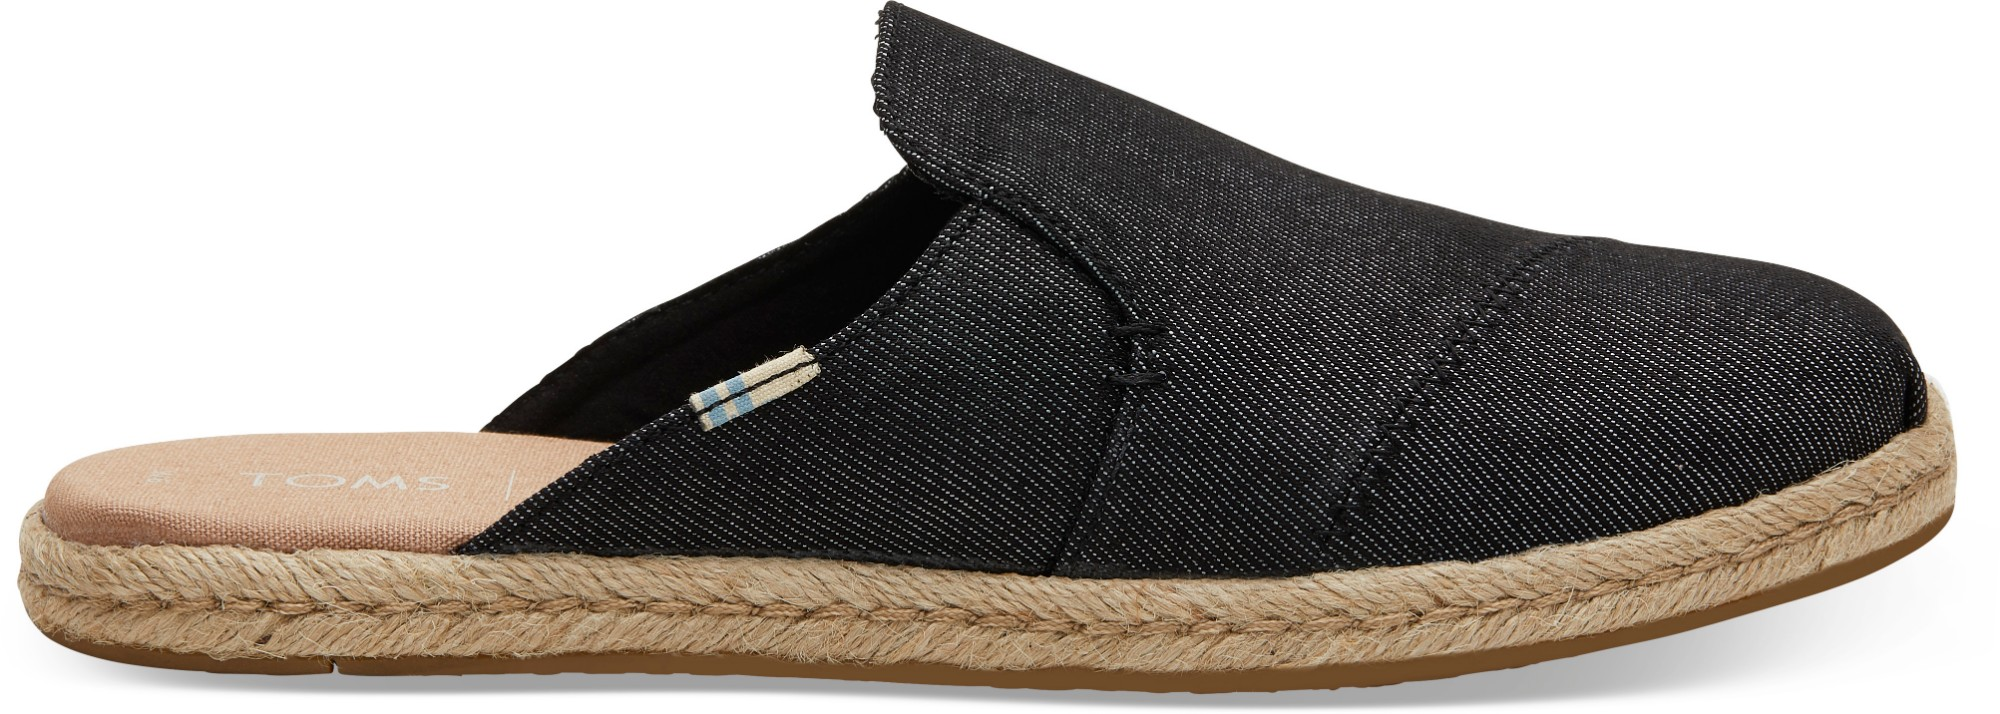 TOMS Denim Women's Nova Black 39